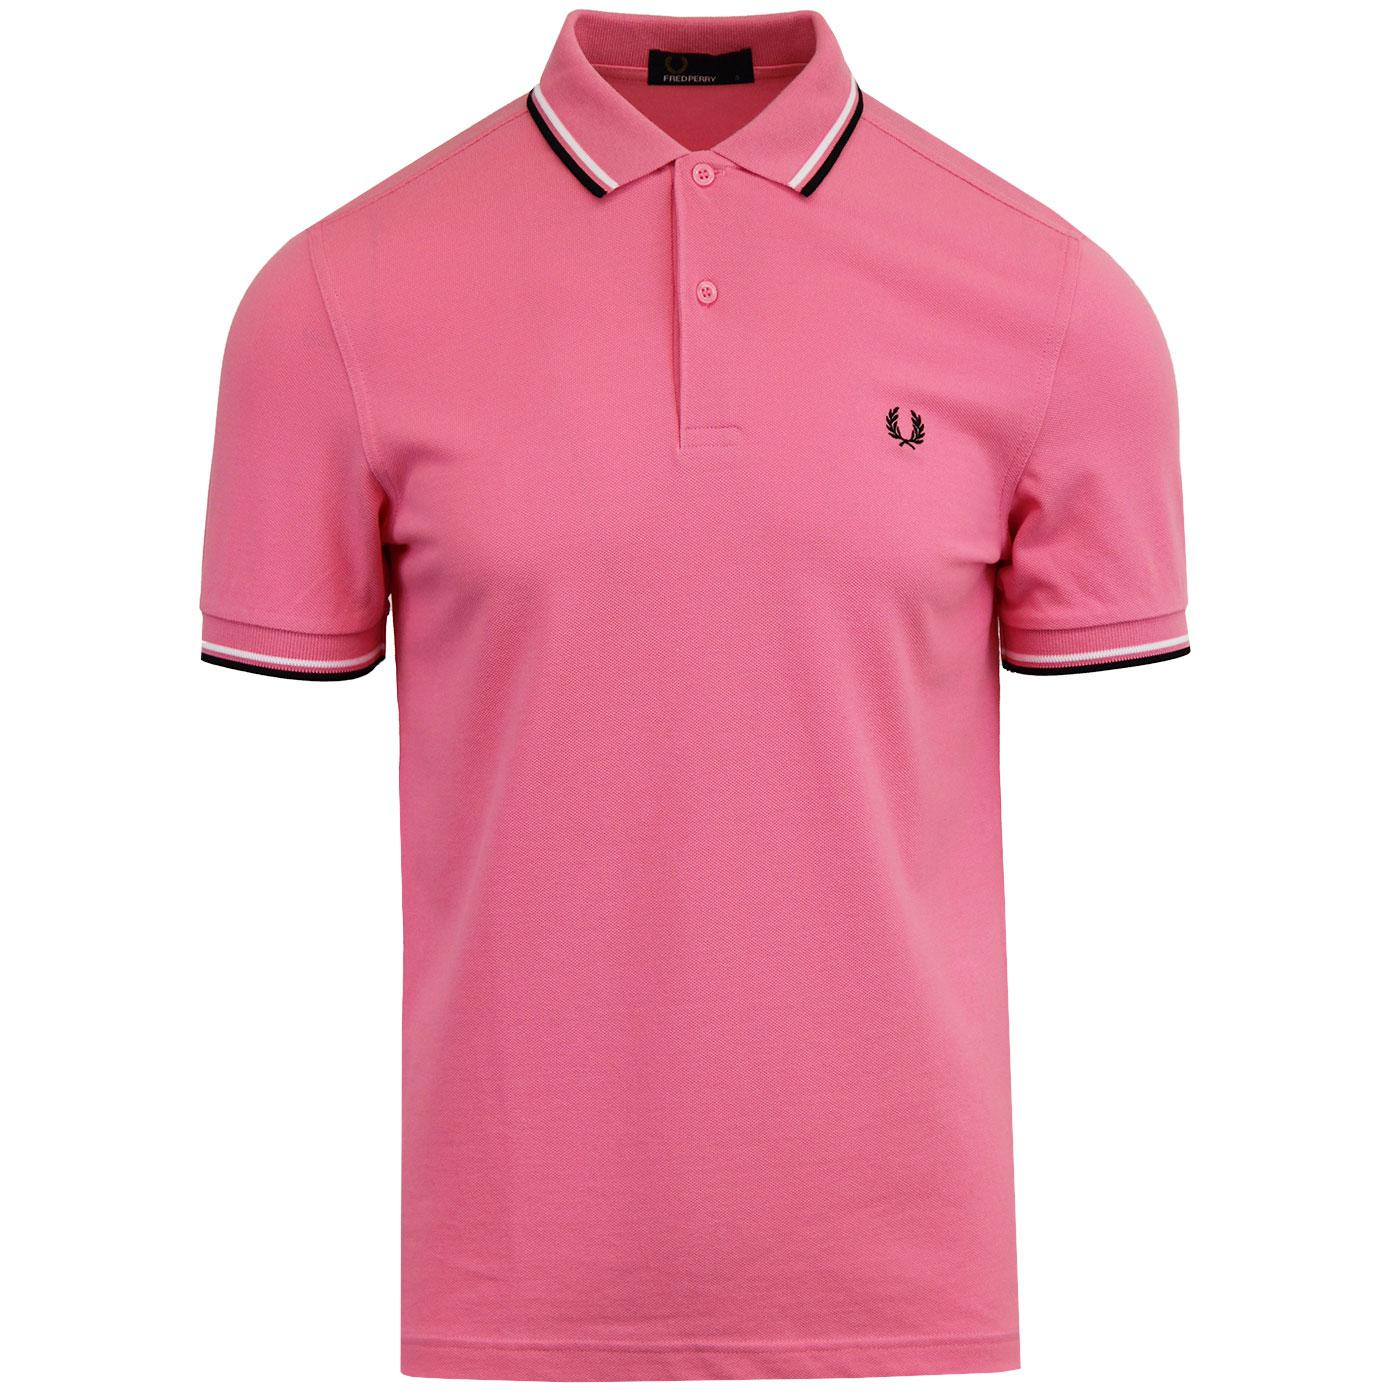 FRED PERRY M3600 Men's Twin Tipped Polo Top BP